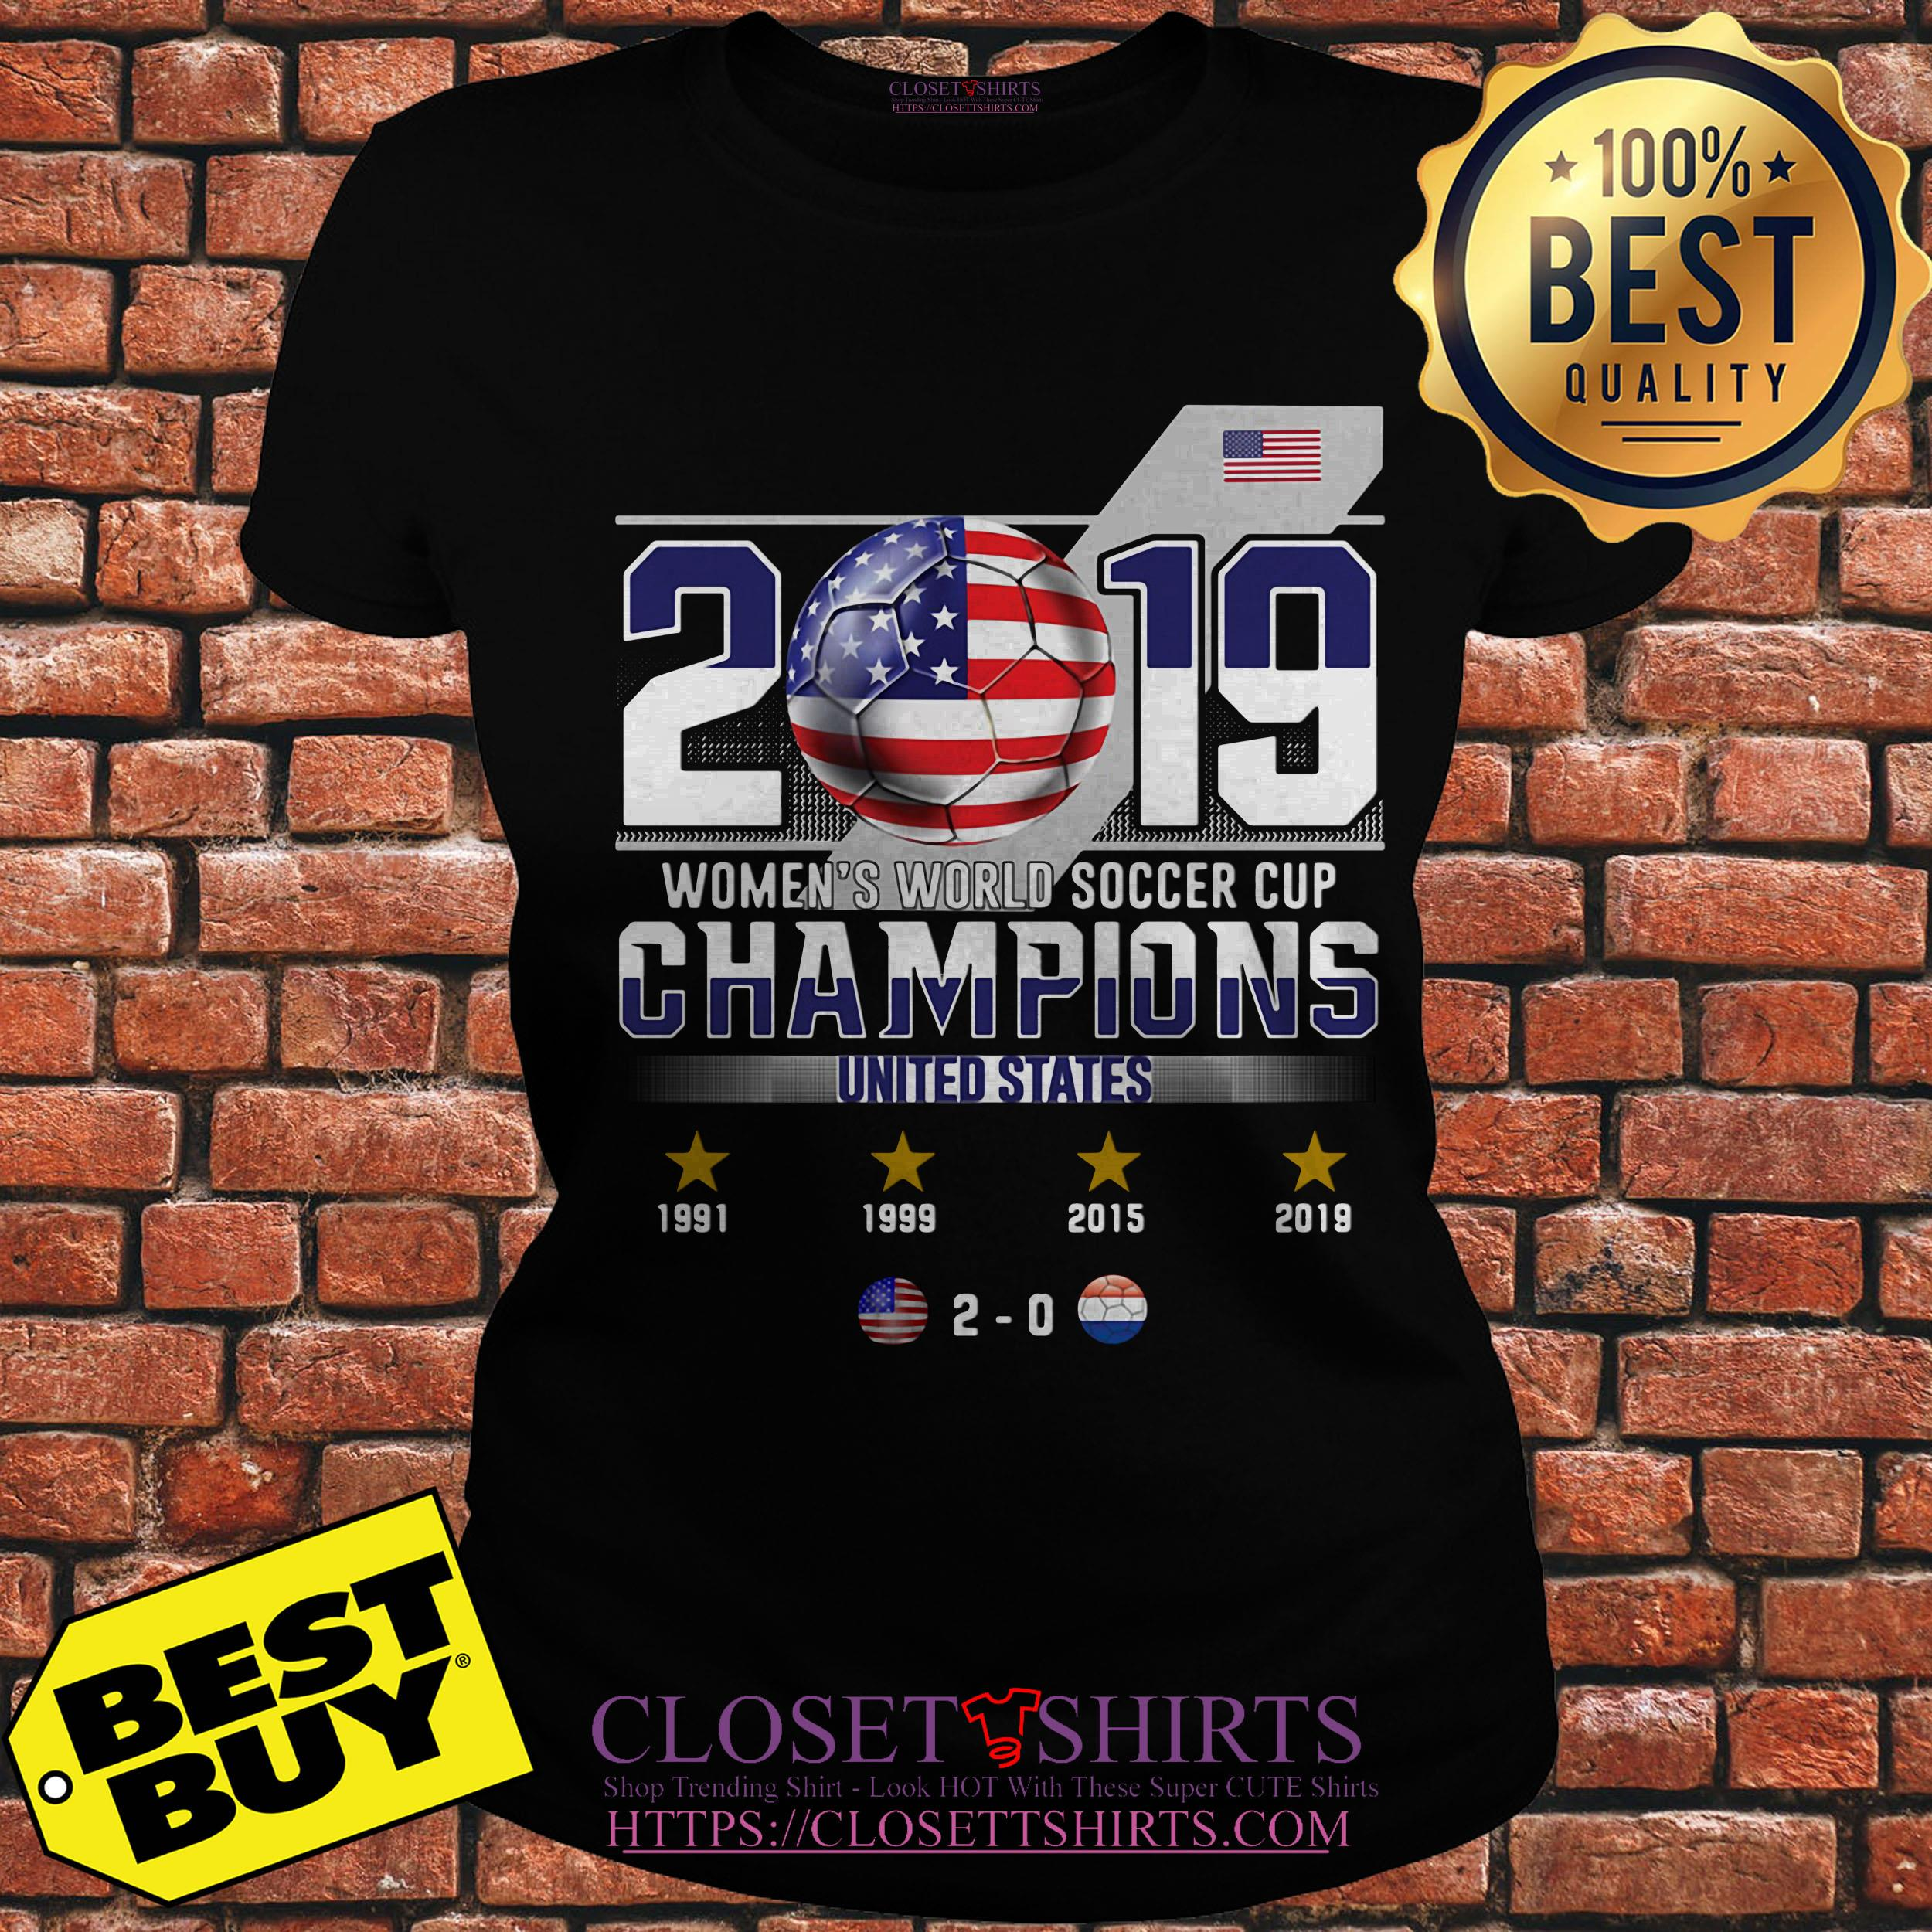 2019 Women's World Soccer Cup Champions United States ladies tee